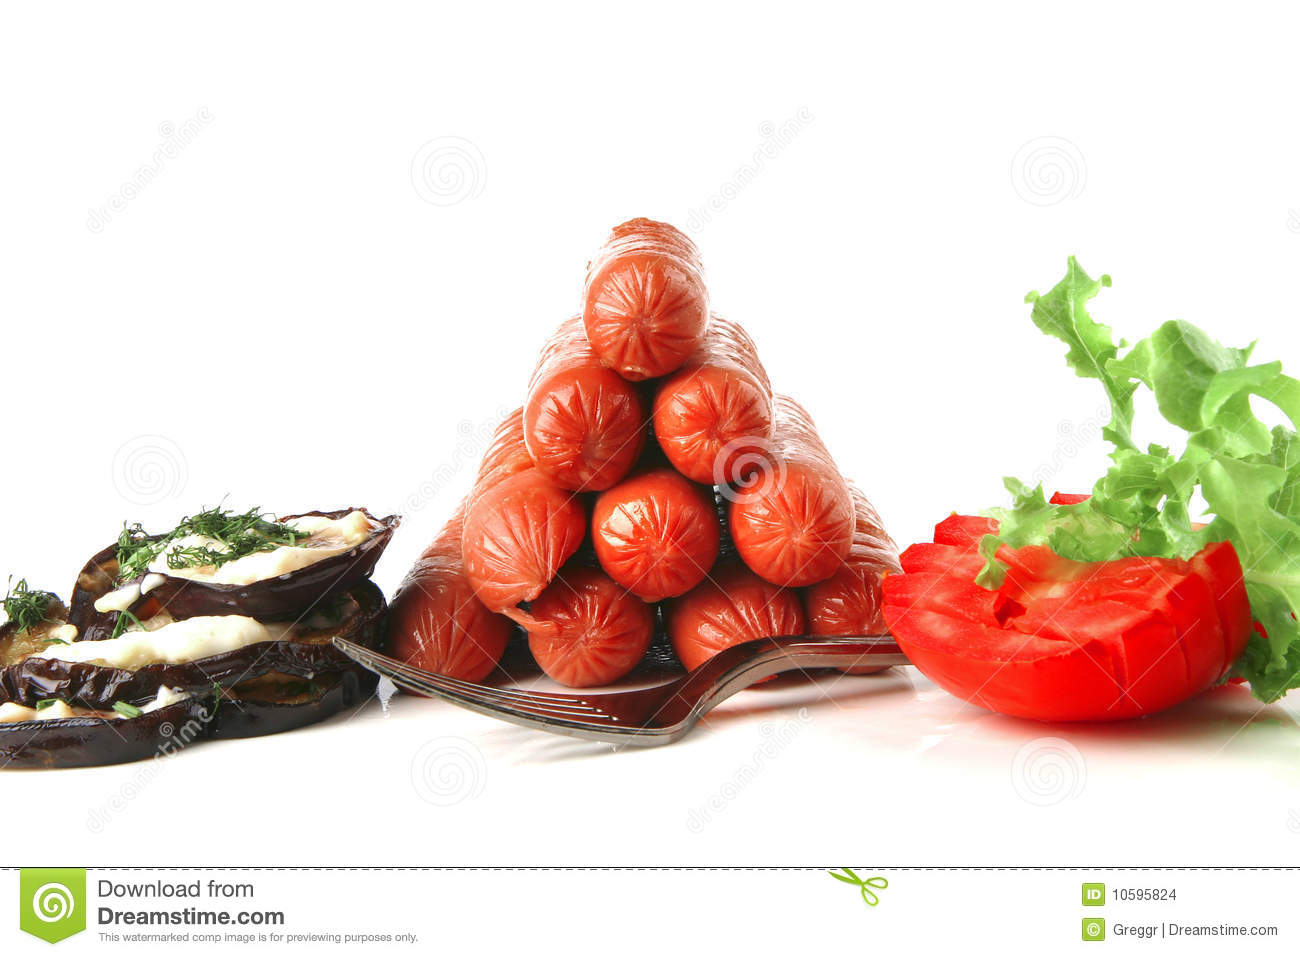 Pyramide of sauages with vegetables